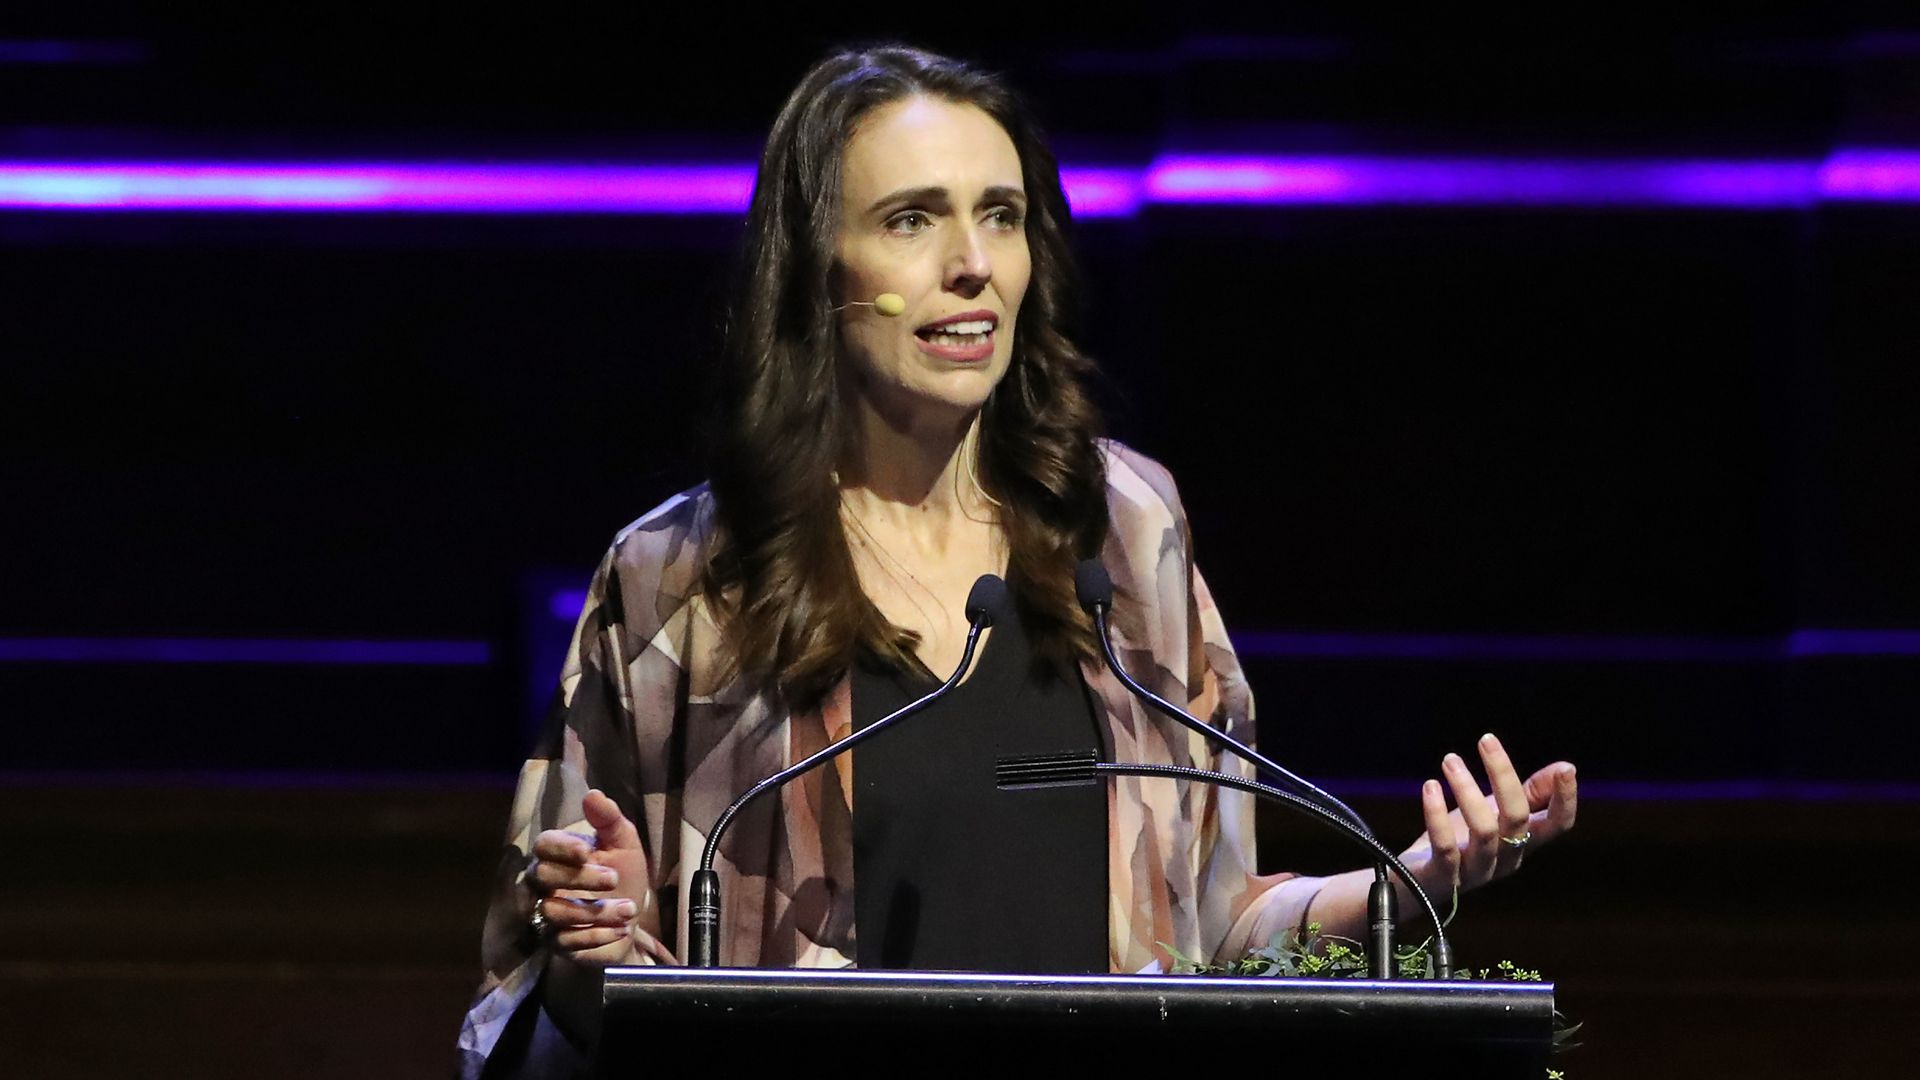 New Zealand PM Jacinda Ardern plans tighter firearms rules and gun register in new weapons law